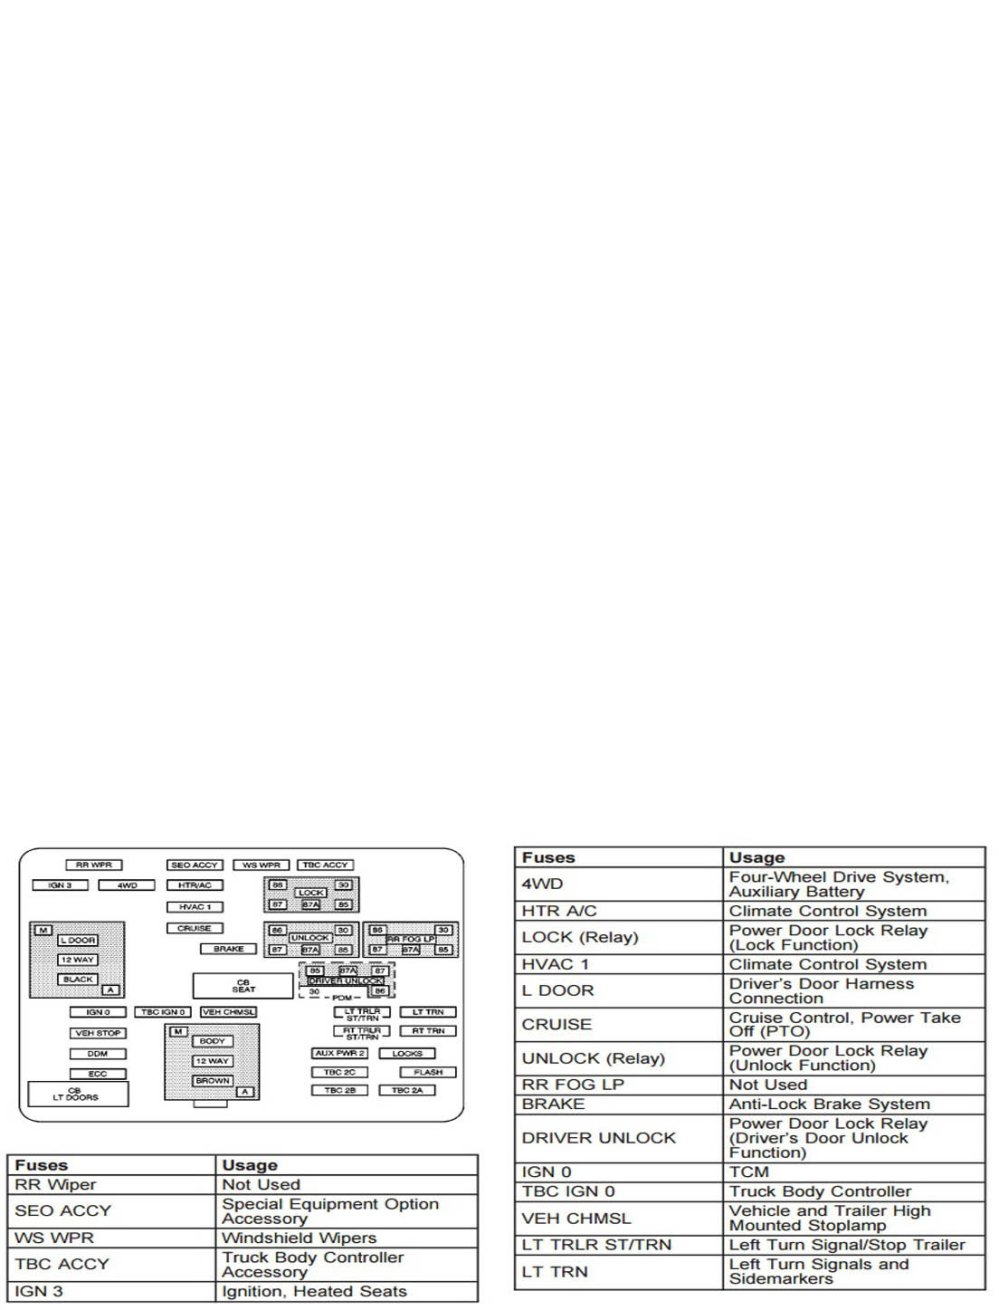 medium resolution of chevrolet silverado gmt800 1999 2006 fuse box diagram chevroletforum rh chevroletforum com 2005 chevy colorado fuse